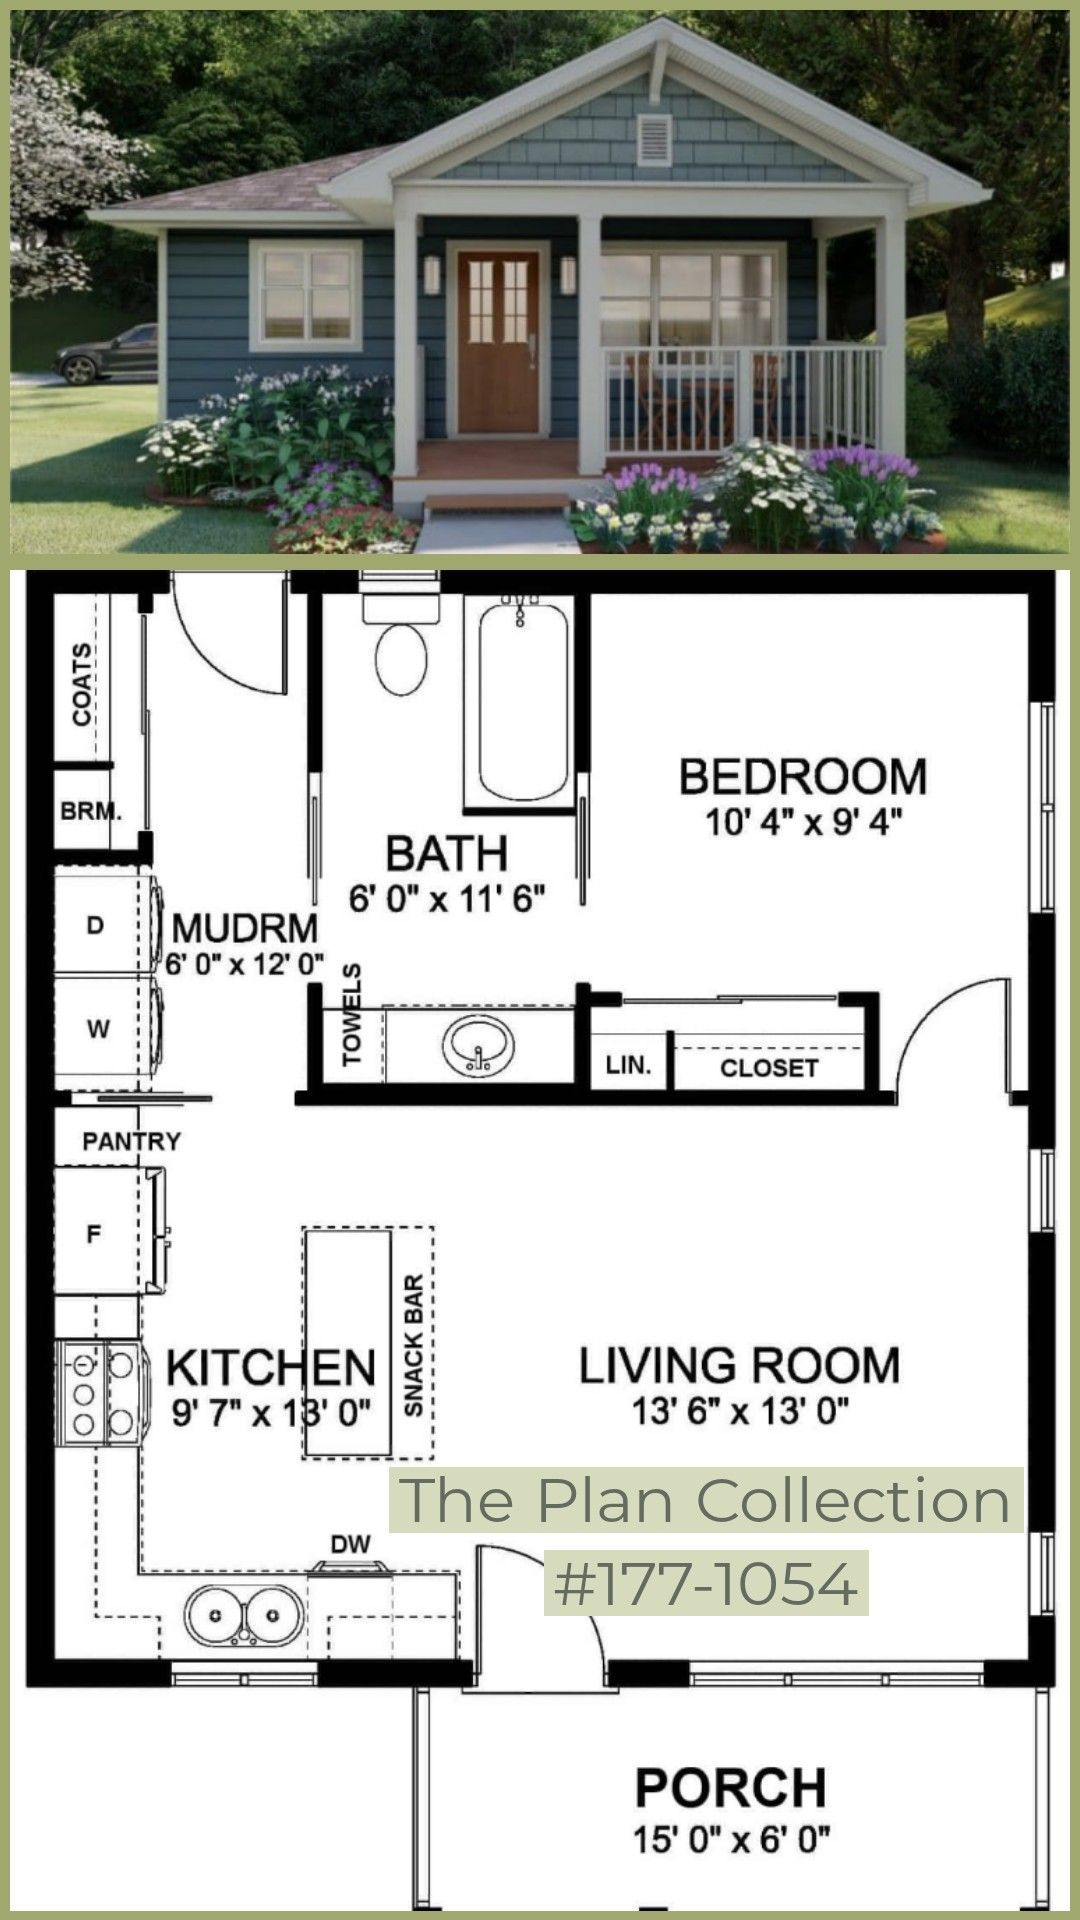 Solid 524 Square Foot Option Mudroom To The Bedroom Could Be Functional In Providing Privacy Sims House Plans Small House Floor Plans Small House